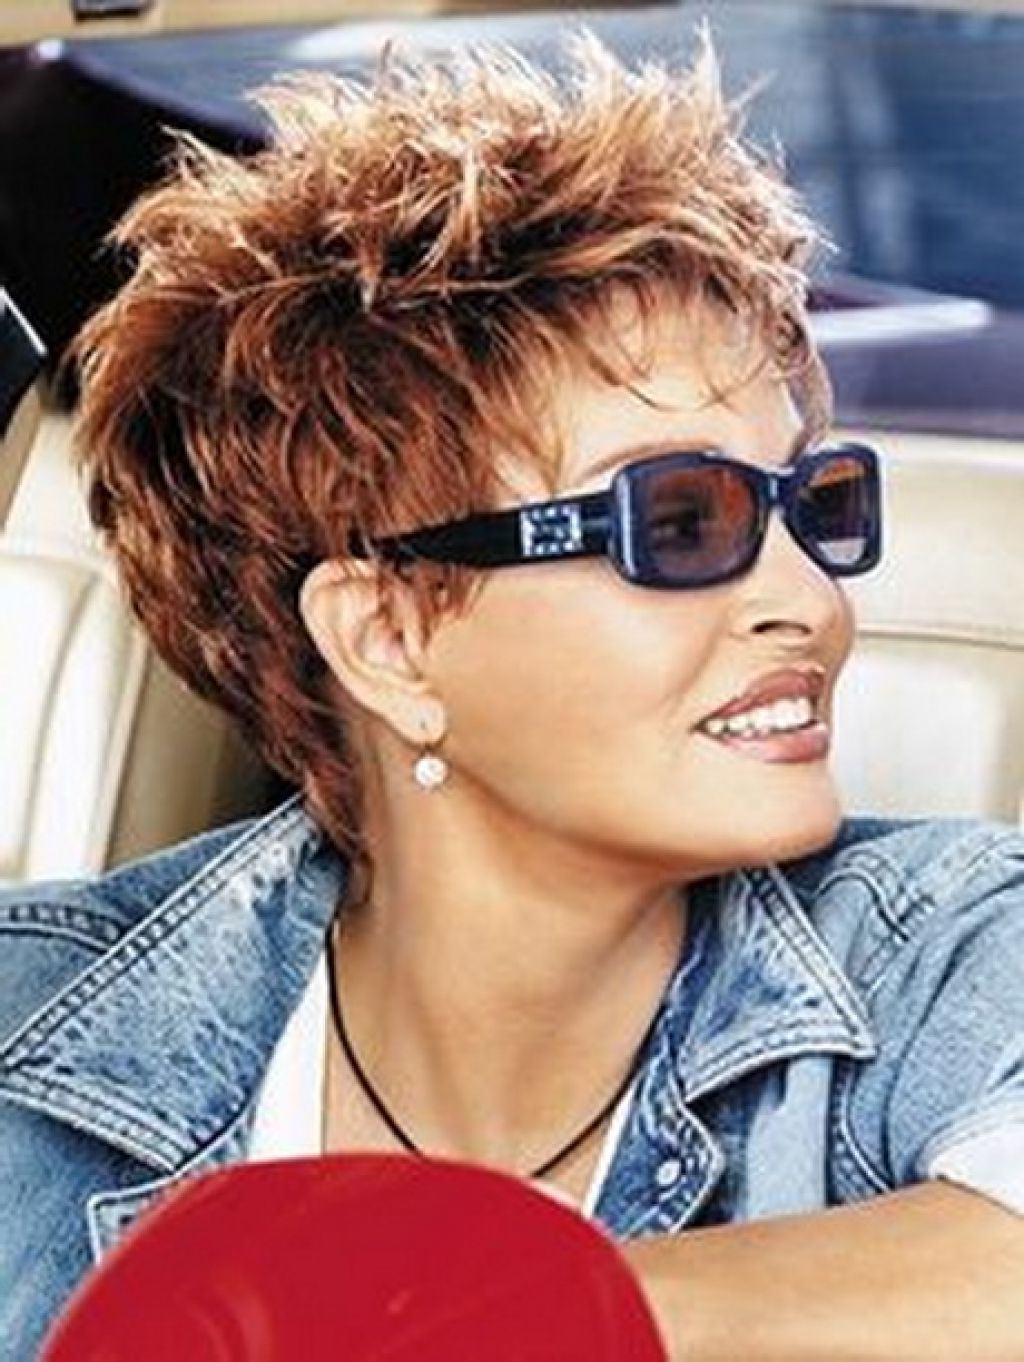 ? 24+ Nice Hairstyles For Women With Glasses: Trendy Short Intended For Short Haircuts For People With Glasses (View 23 of 25)